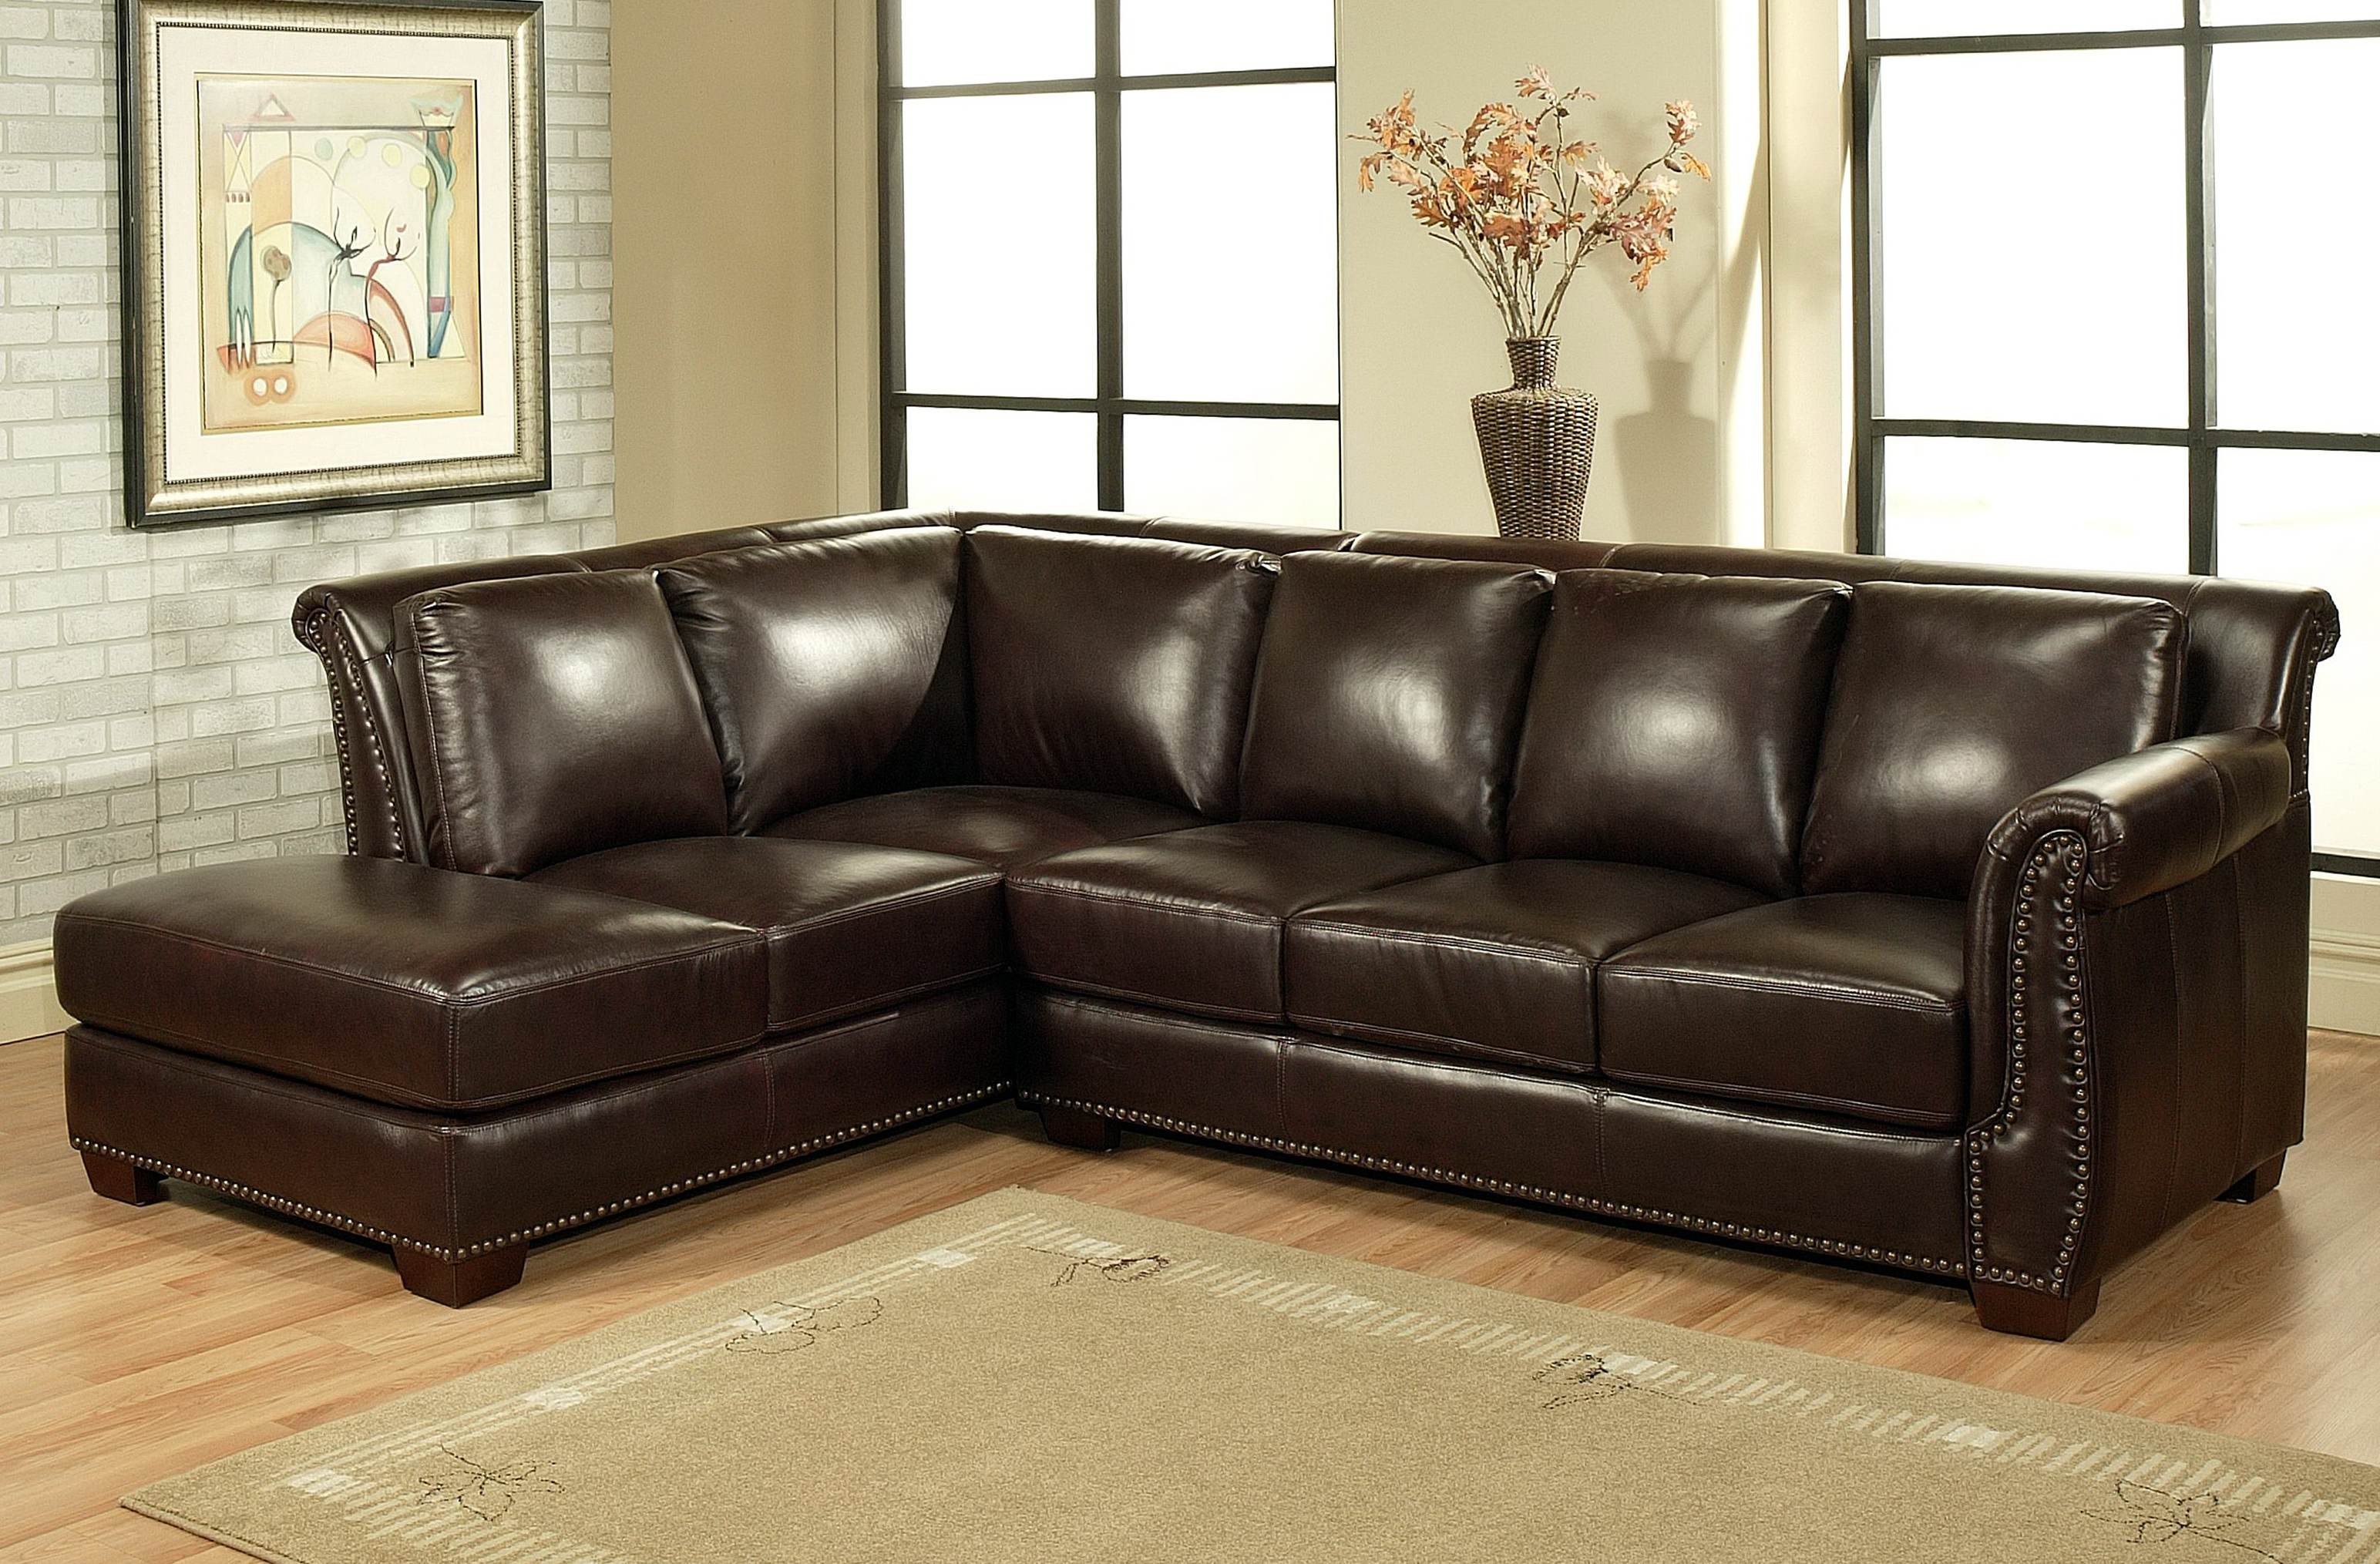 Large Leather Sectional Sofas